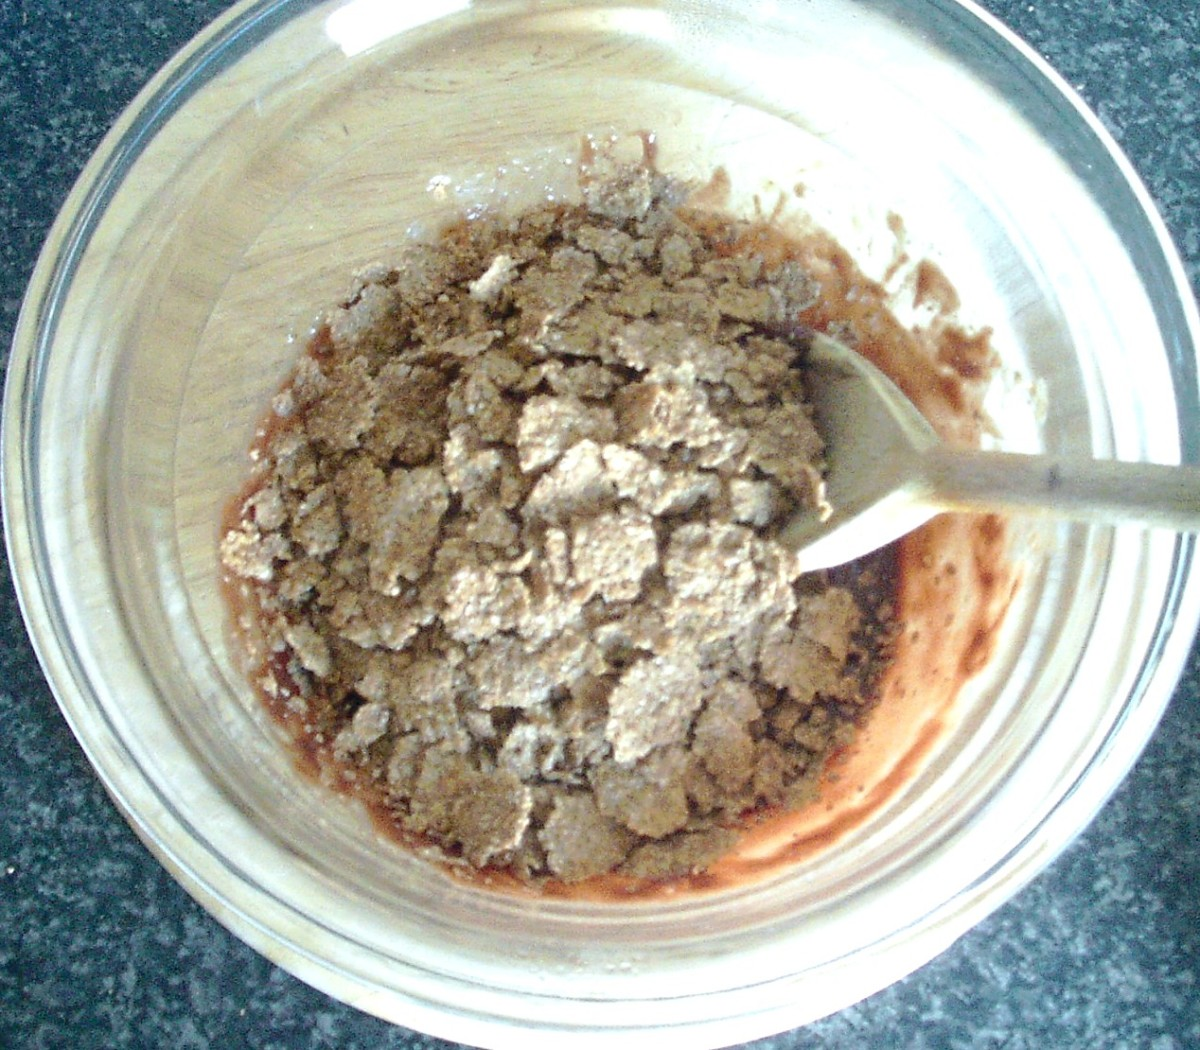 Bran flakes are added to the bowl in stages